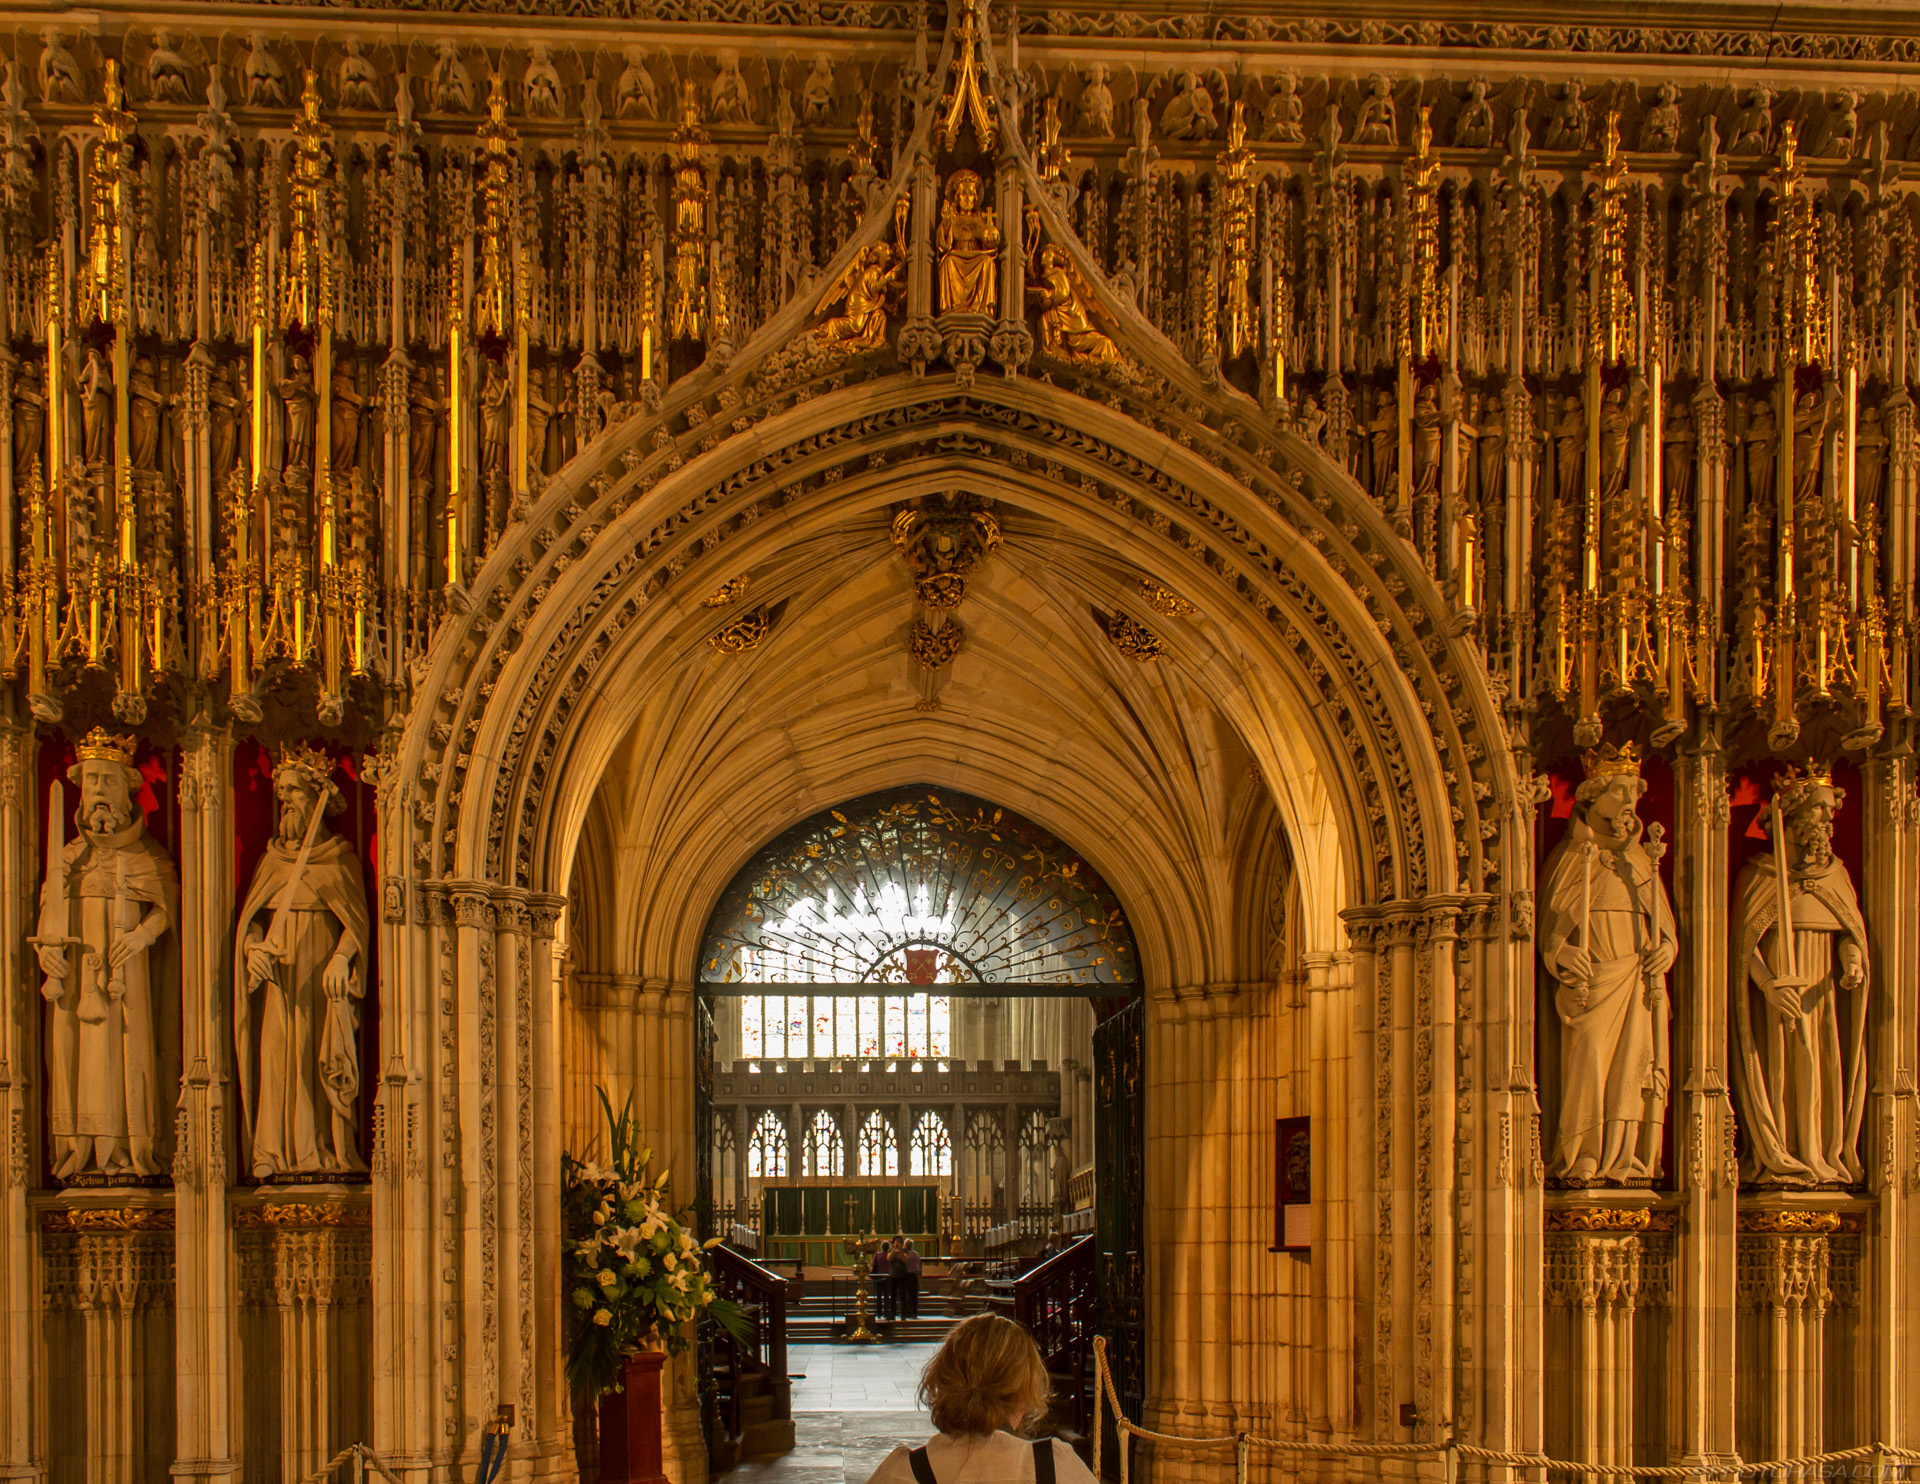 http://photorasa.com/places/yorkminster-cathedral/attachment/ornate-entrance-to-the-choir/